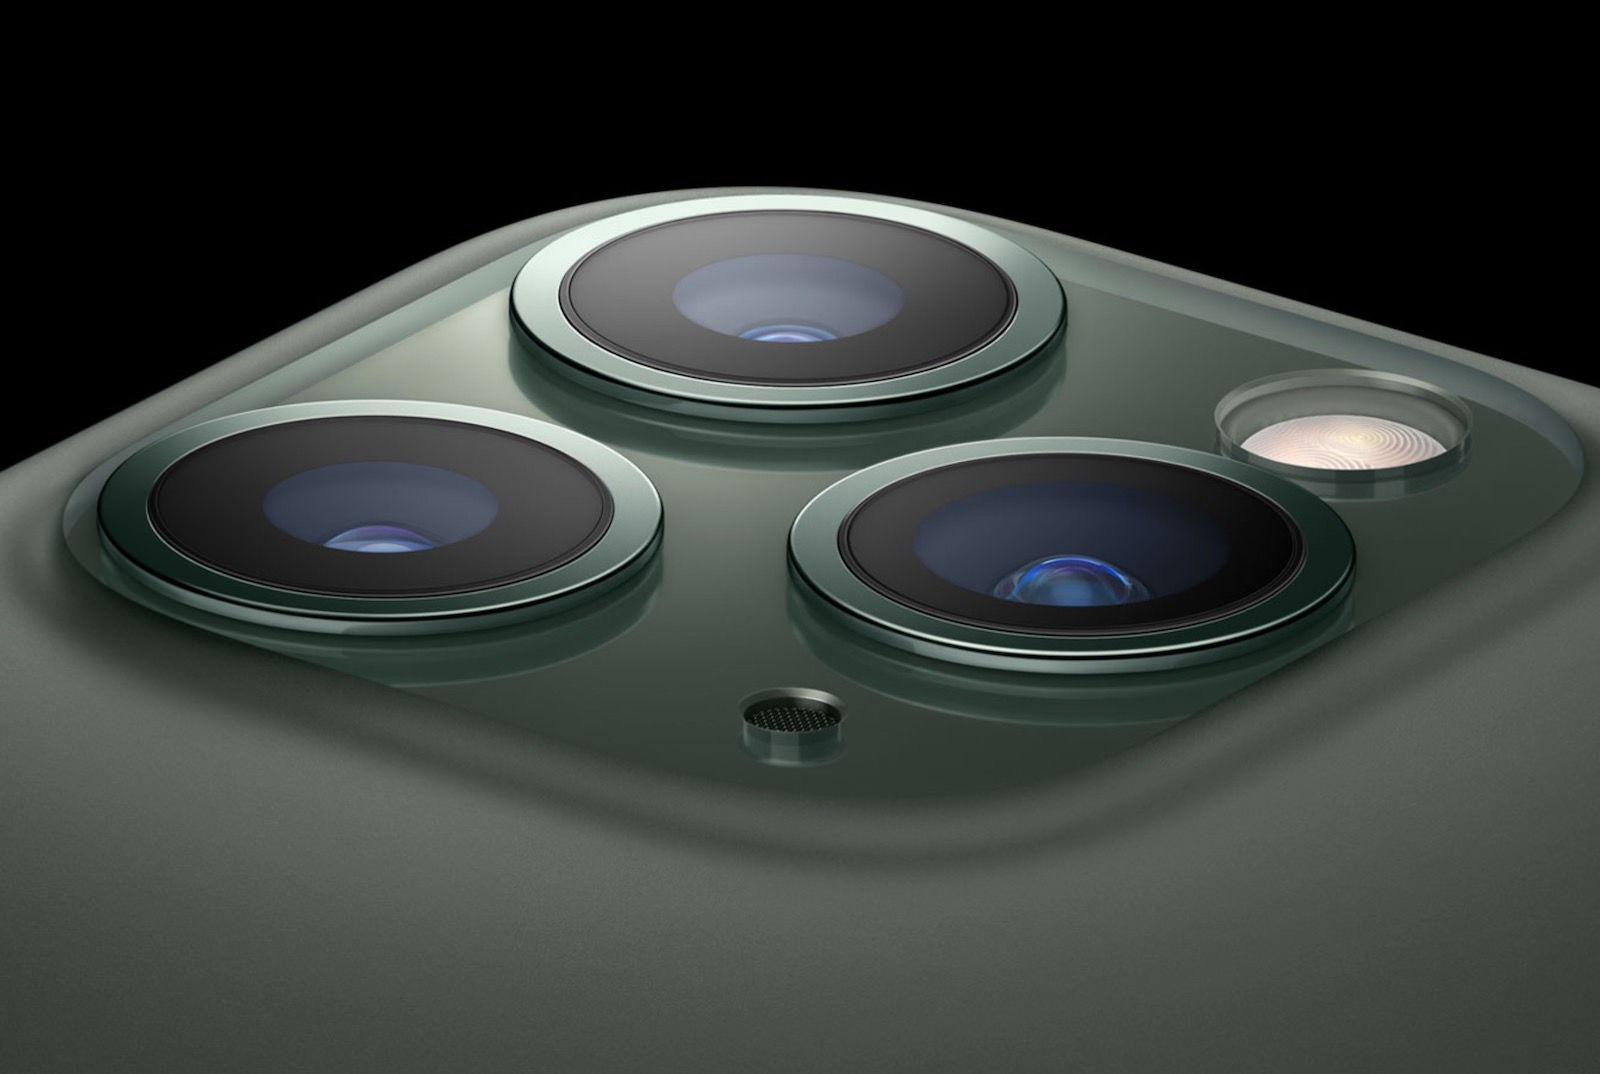 Iphone 11 pro triple lens camera